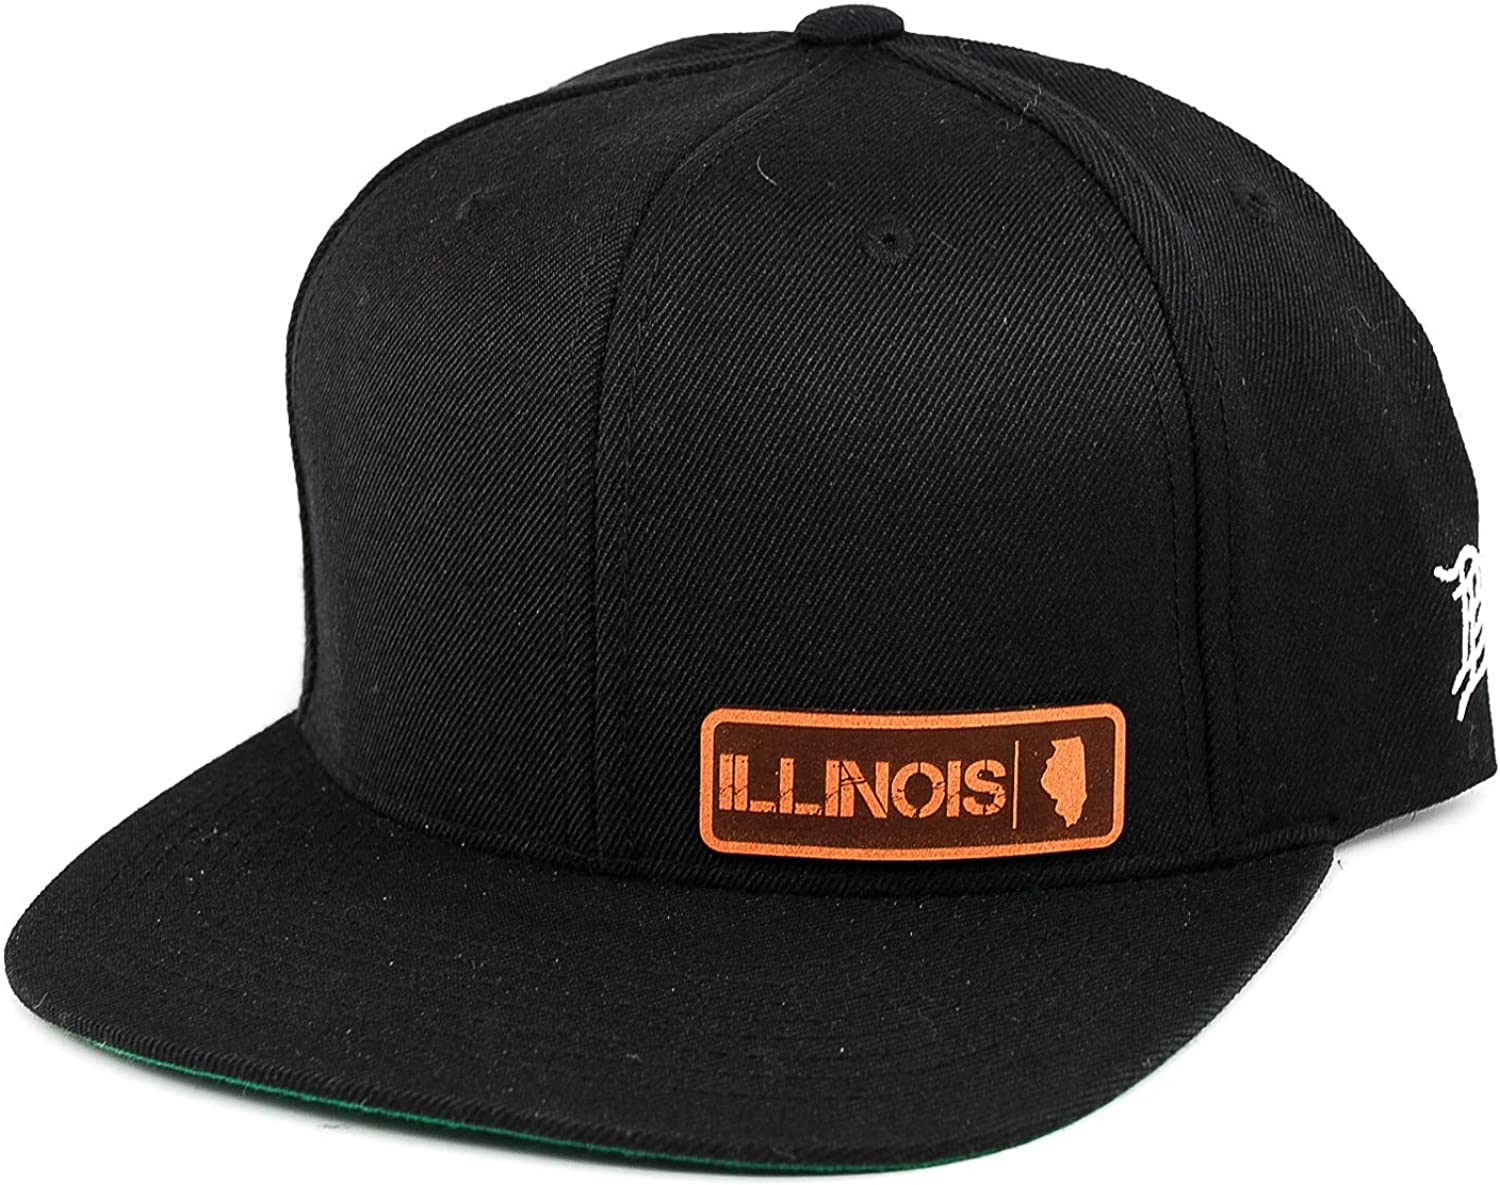 Branded Bills /'Illinois Native Leather Patch Snapback Hat OSFA//Black